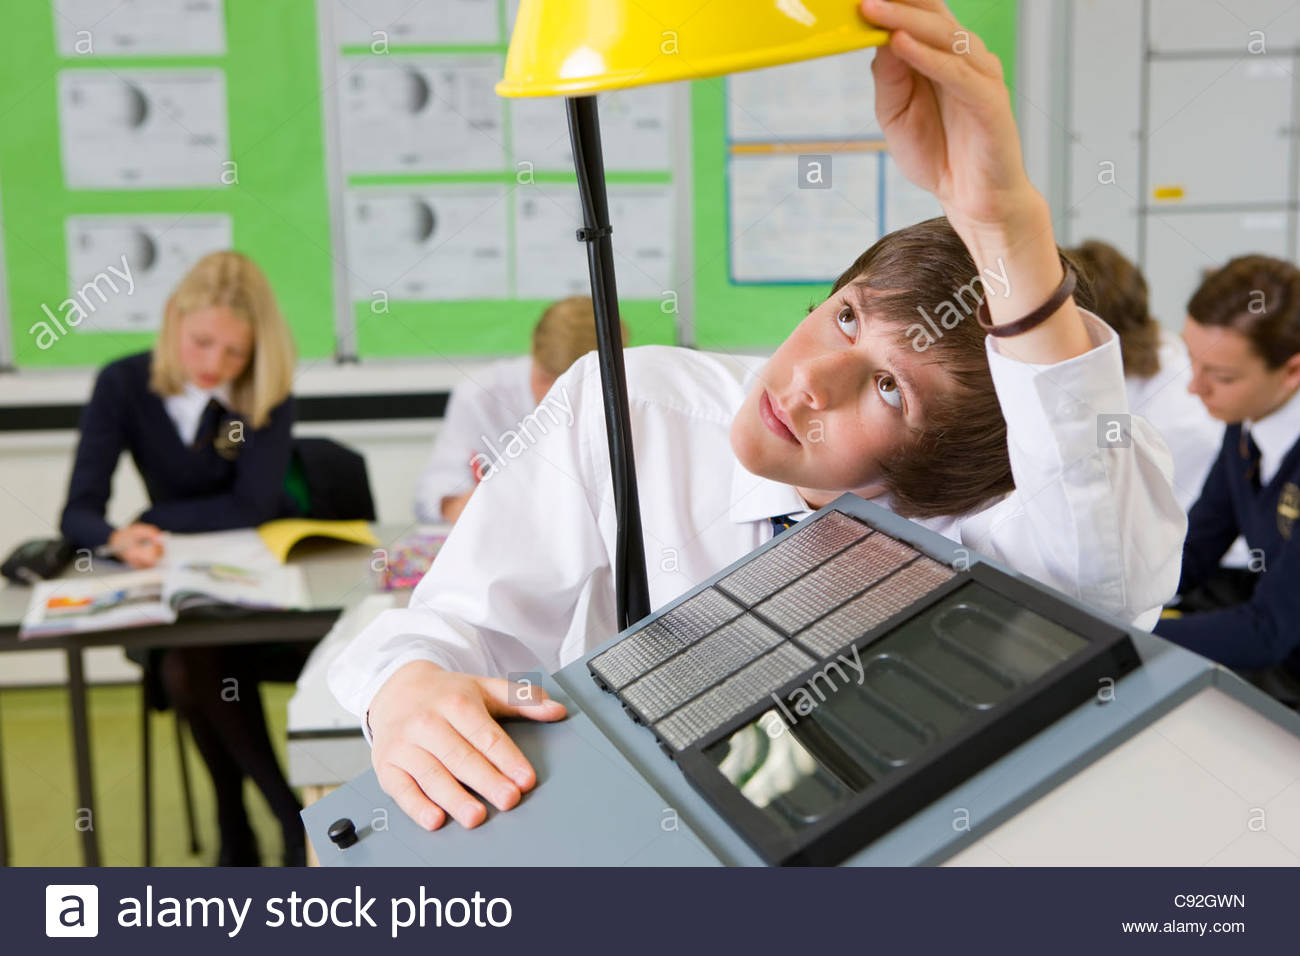 Student experimenting with solar panel and light in science class - Stock Image